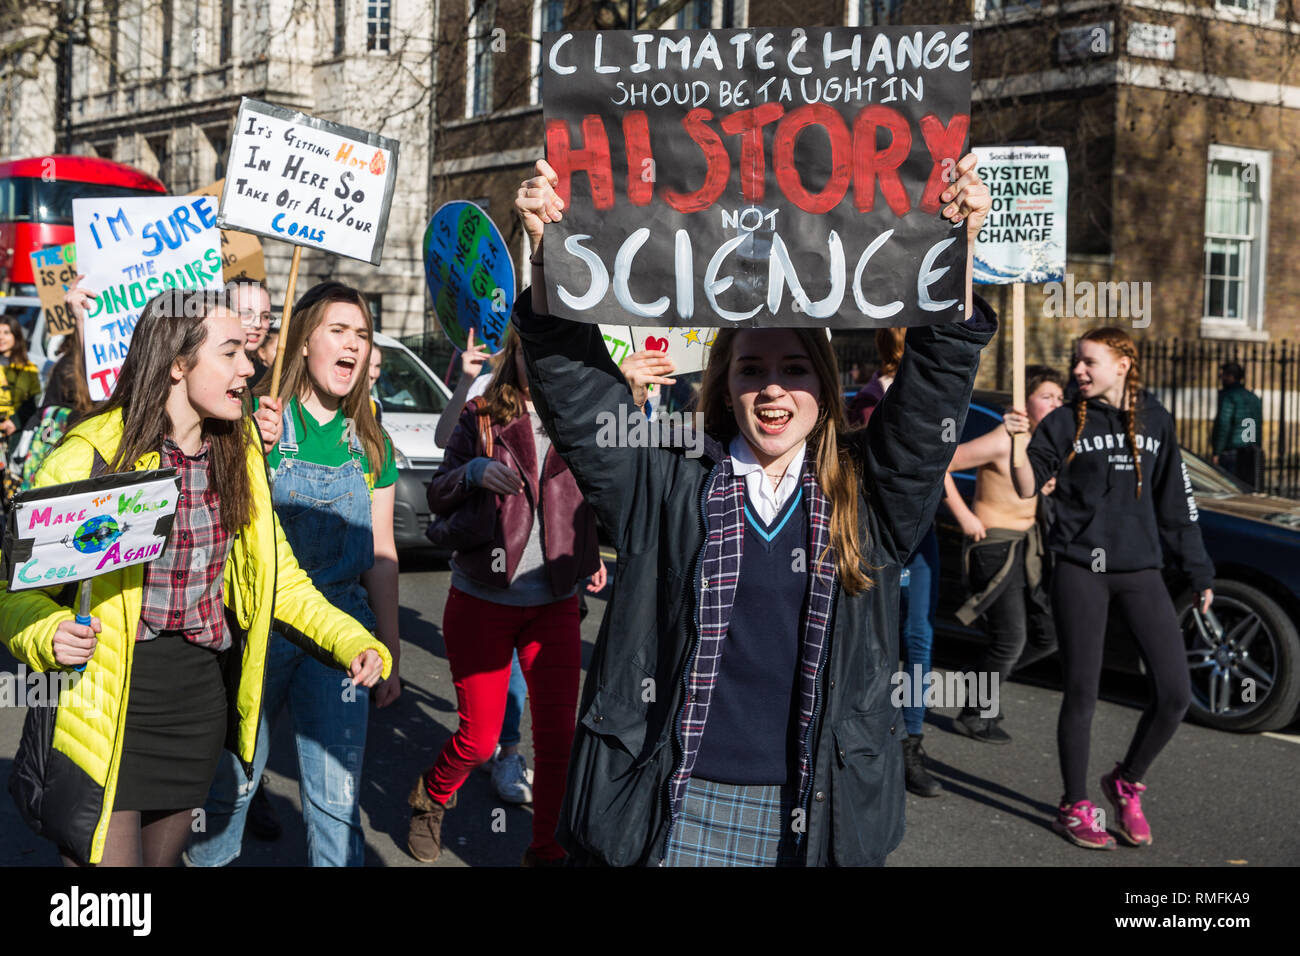 London, UK. 15th February, 2019. Thousands of students take part in a YouthStrike4Climate for Climate Day. After gathering in Parliament Square, students blocked streets around Westminster. Strike events involving schools all over the UK were organised by UK Student Climate Network and the UK Youth Climate Coalition to demand that the Government declare a climate emergency and take positive steps to address the climate crisis, including highlighting the issue as part of the school curriculum. Credit: Mark Kerrison/Alamy Live News Stock Photo